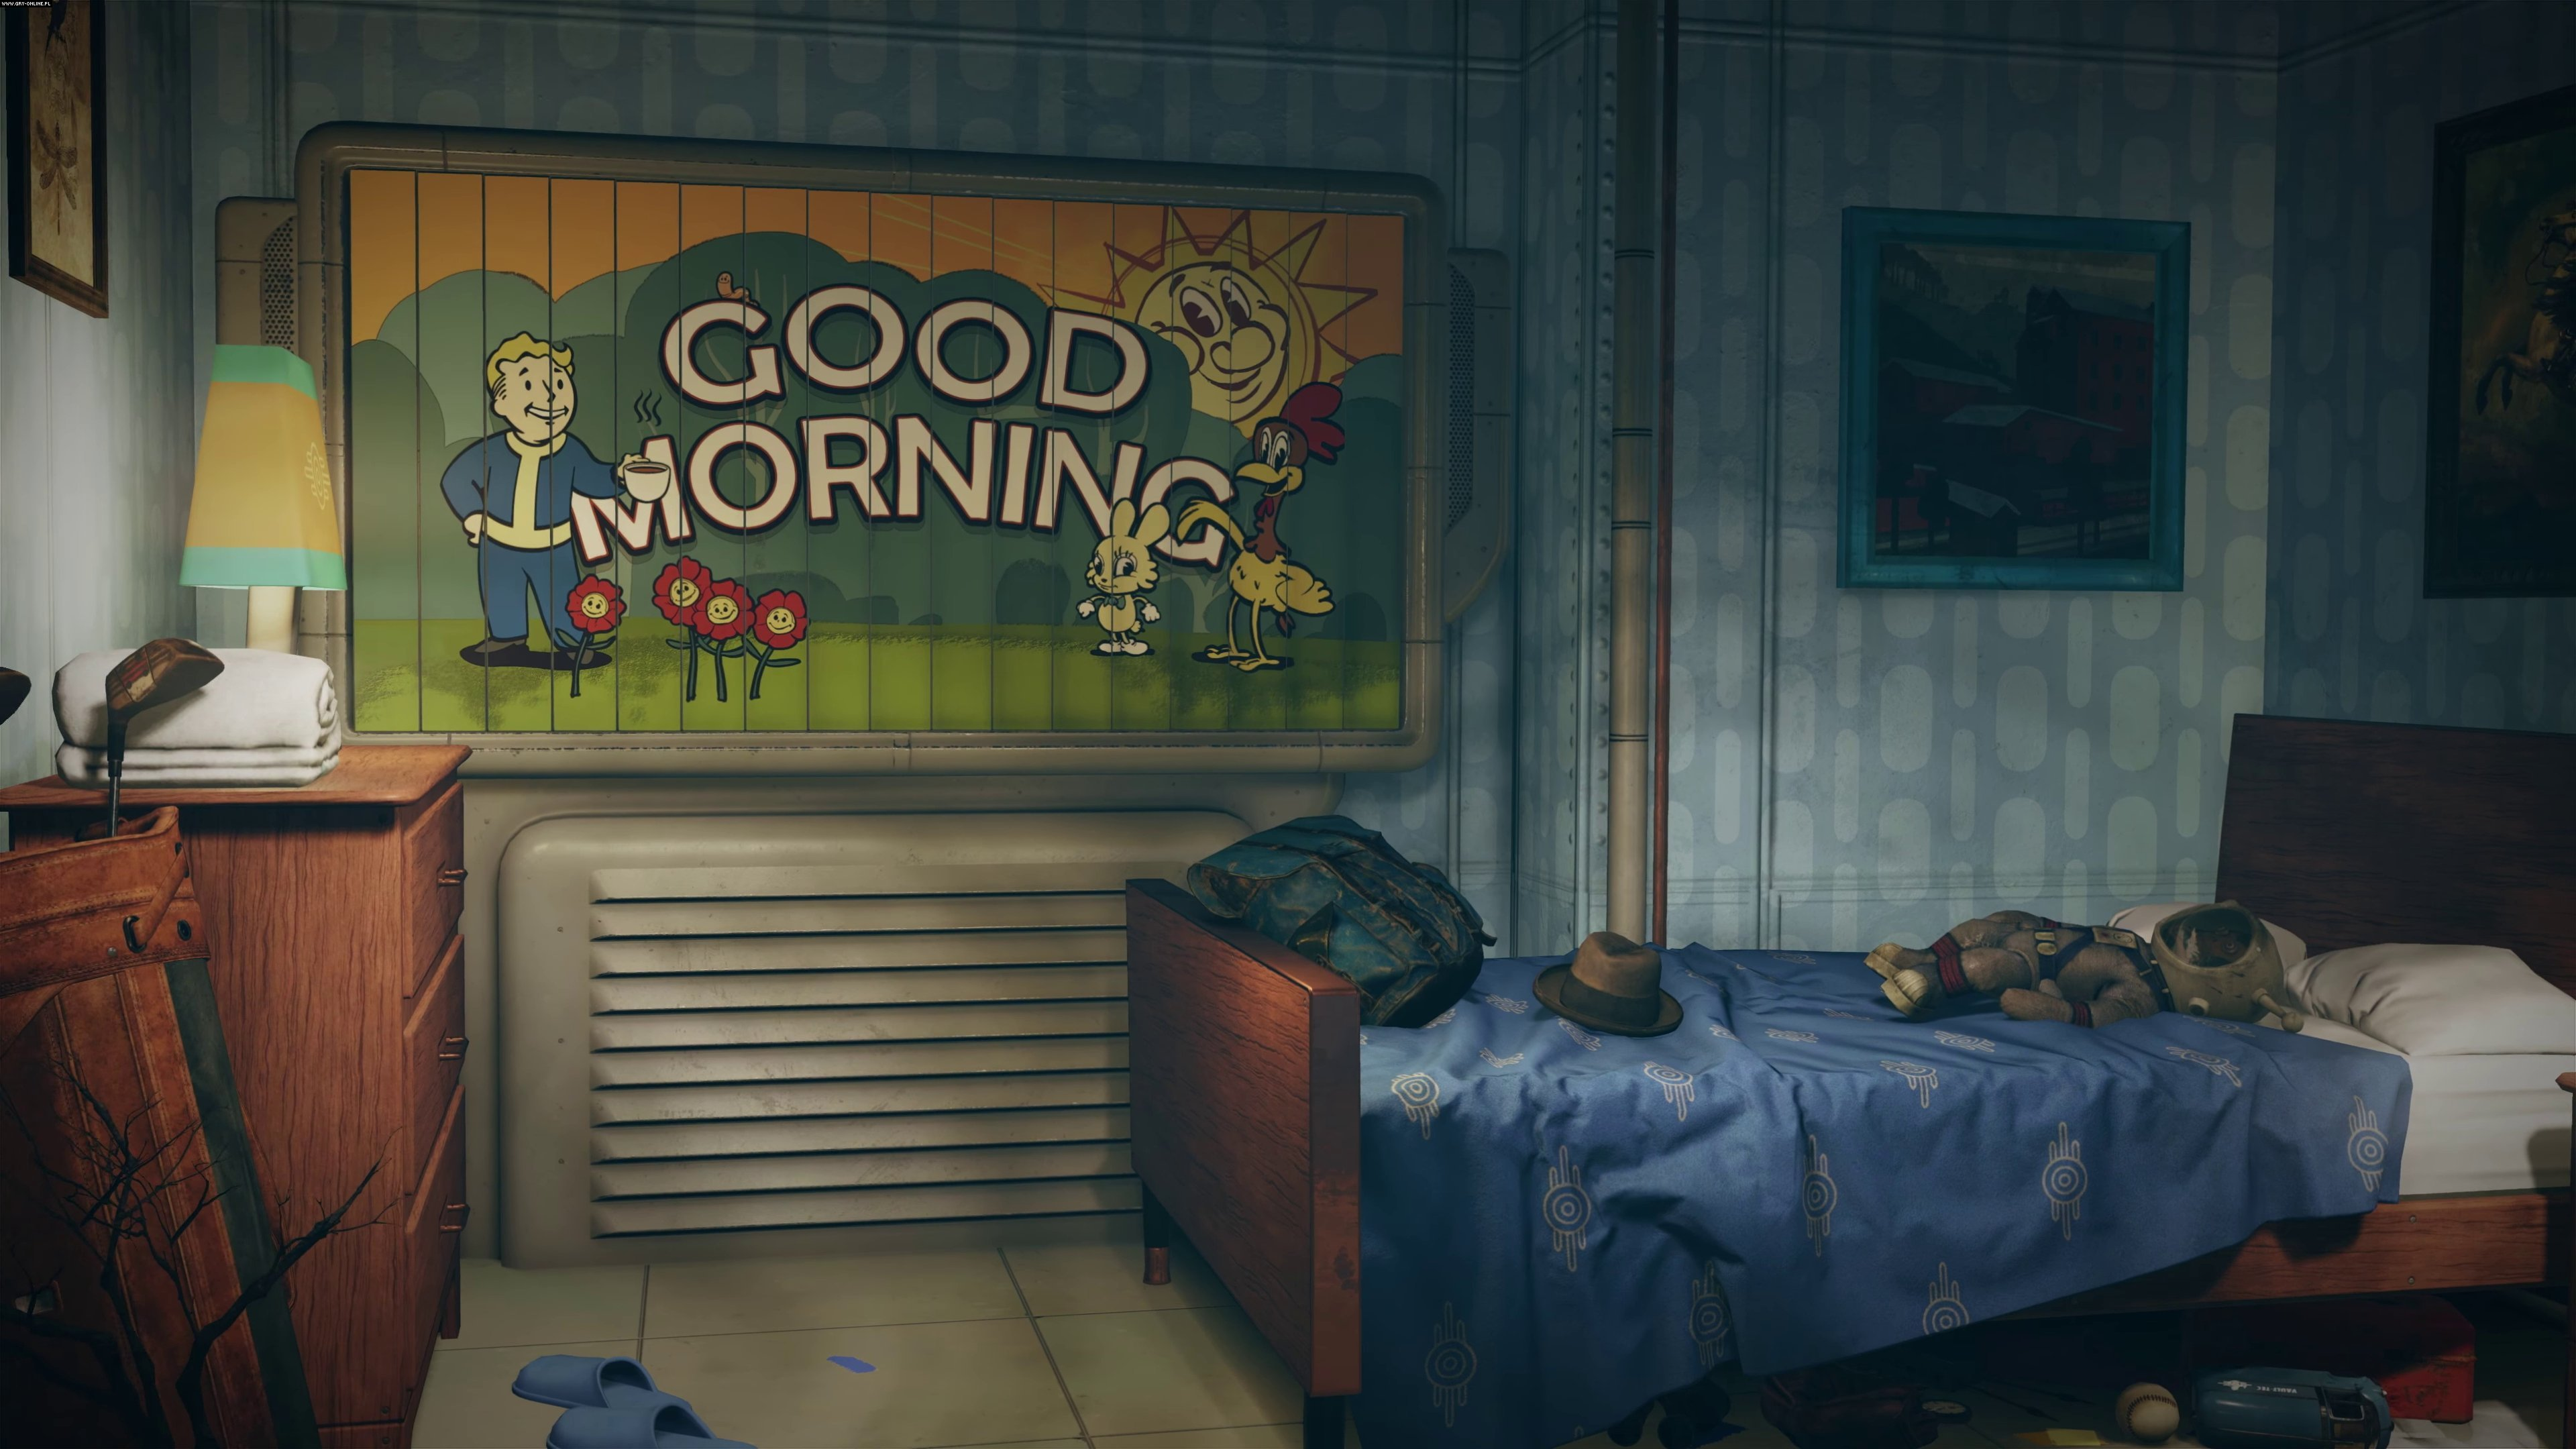 Fallout 76 PC, XONE, PS4 Games Image 19/28, Bethesda Softworks